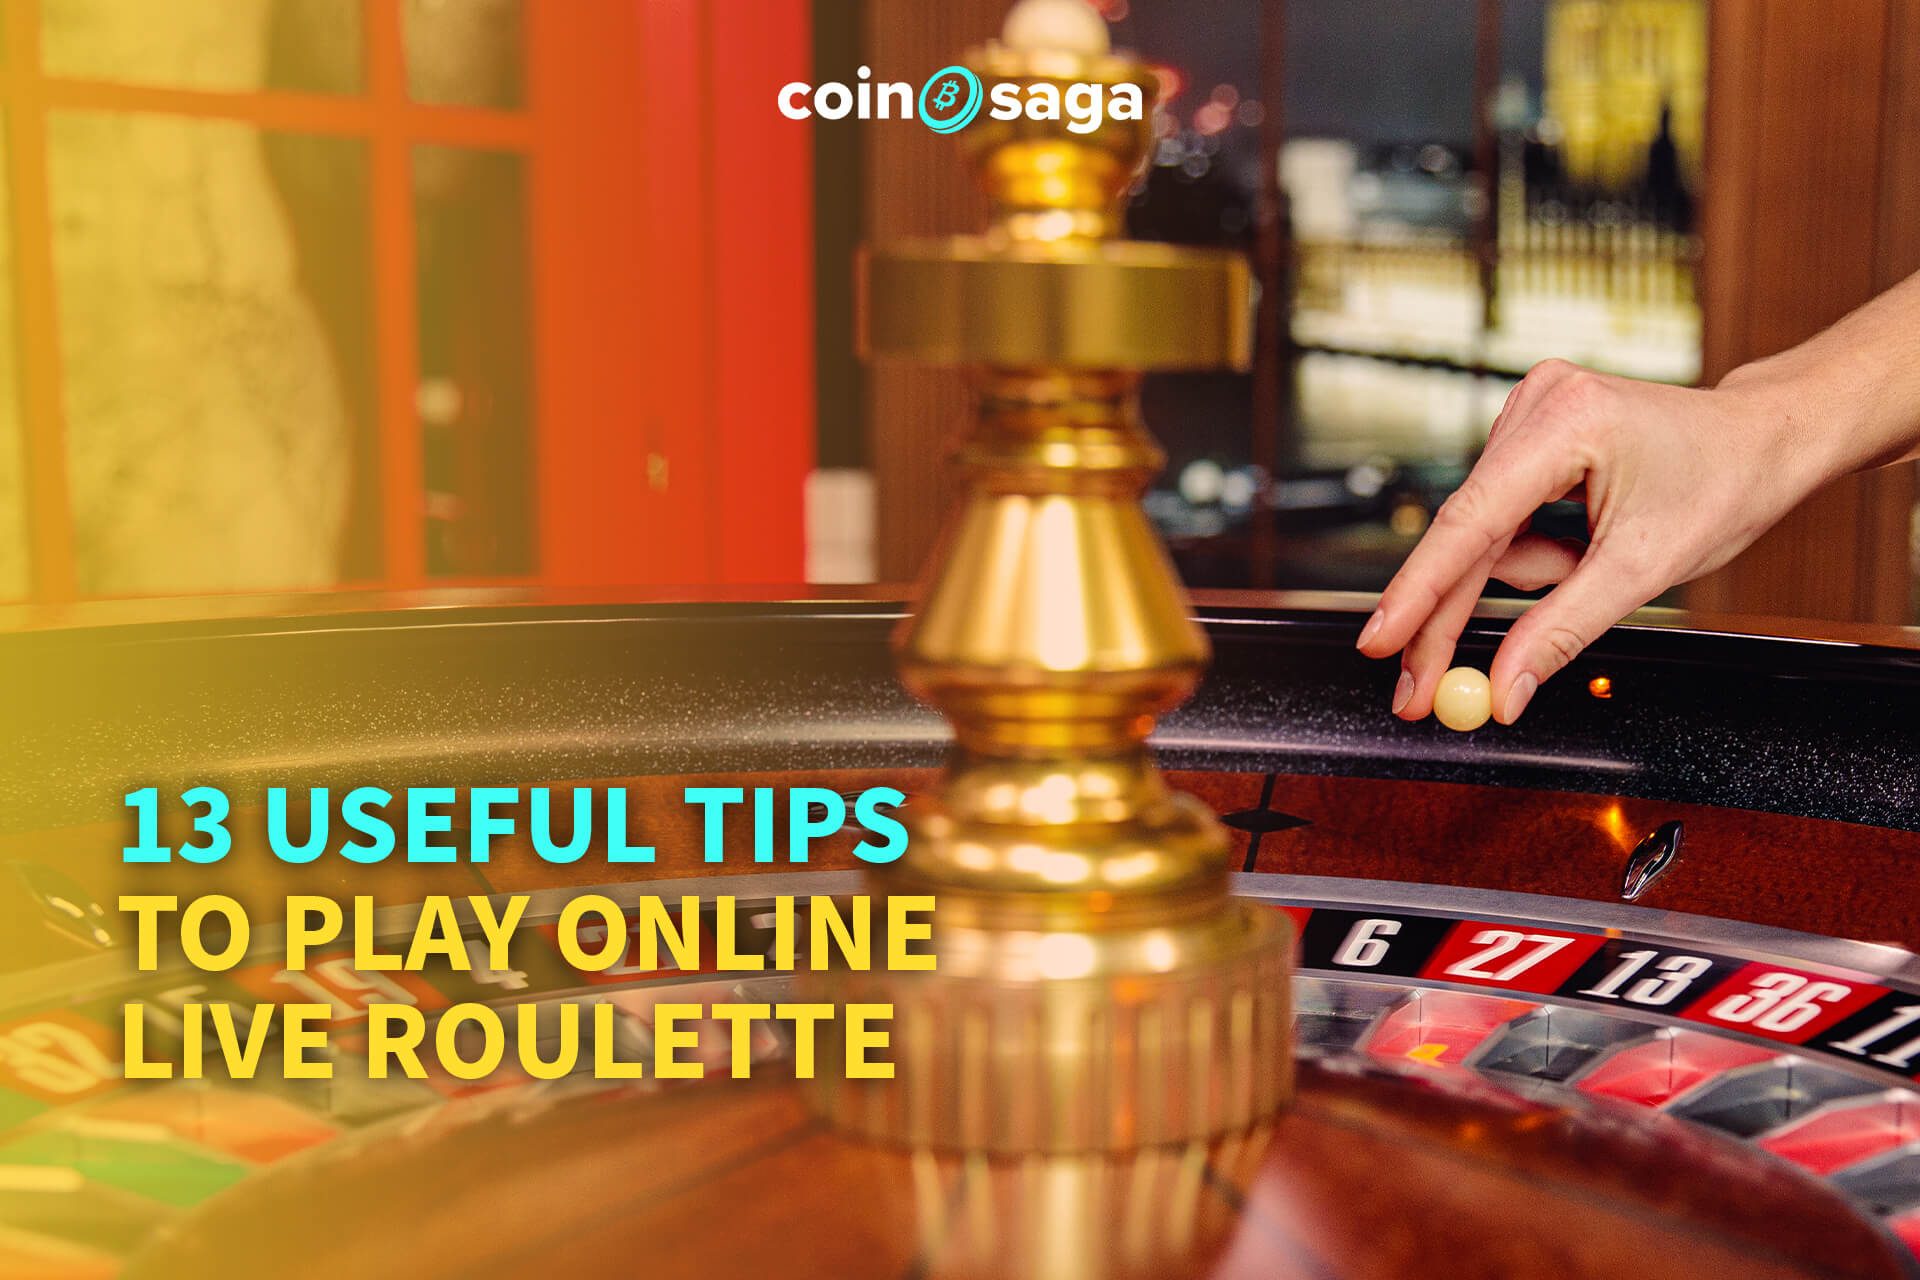 play online live roulette